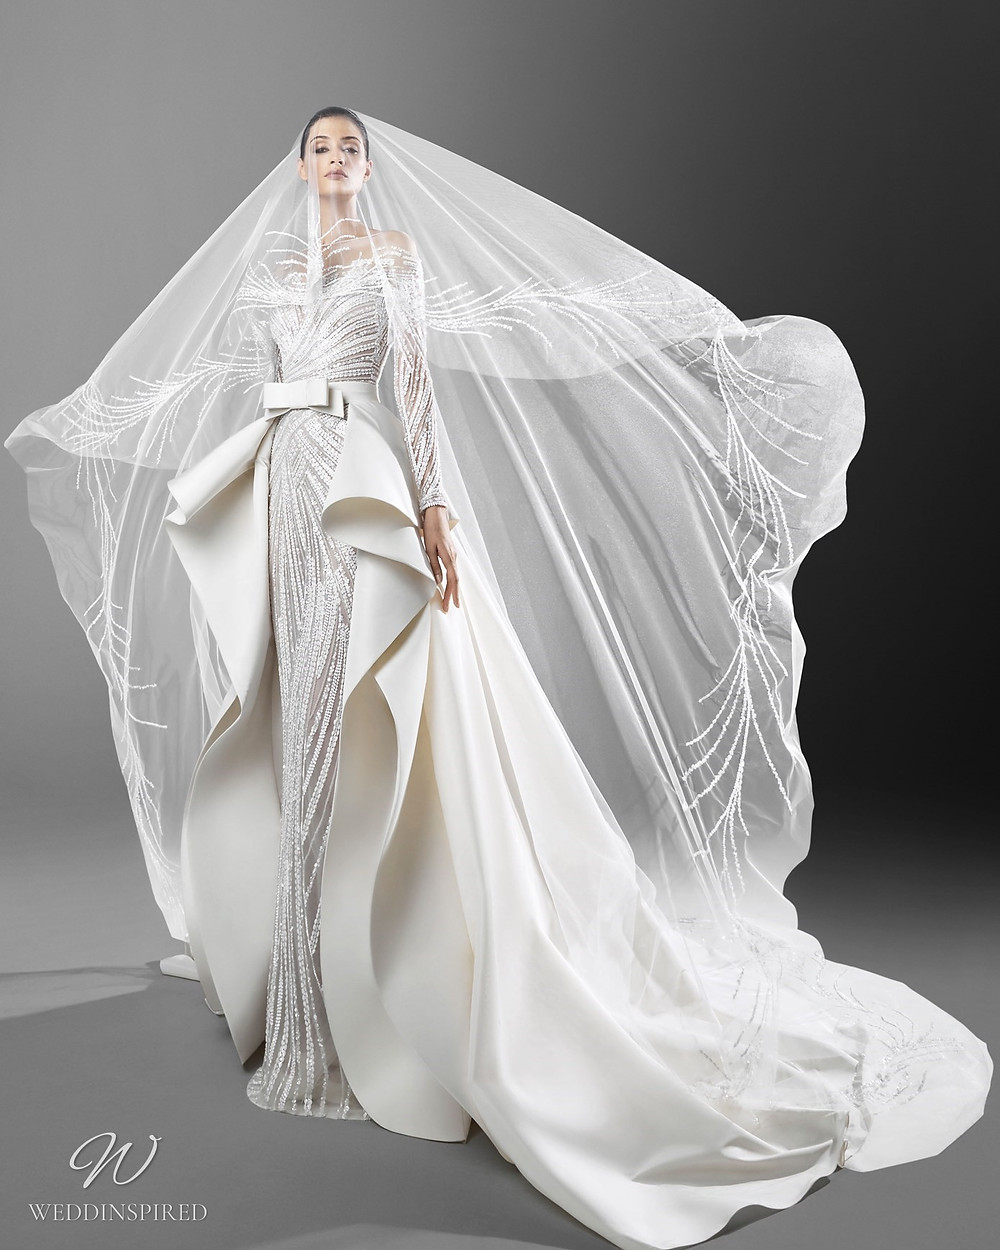 A Zuhair Murad mermaid wedding dress with crystals, a detachable skirt, an illusion neckline and a veil